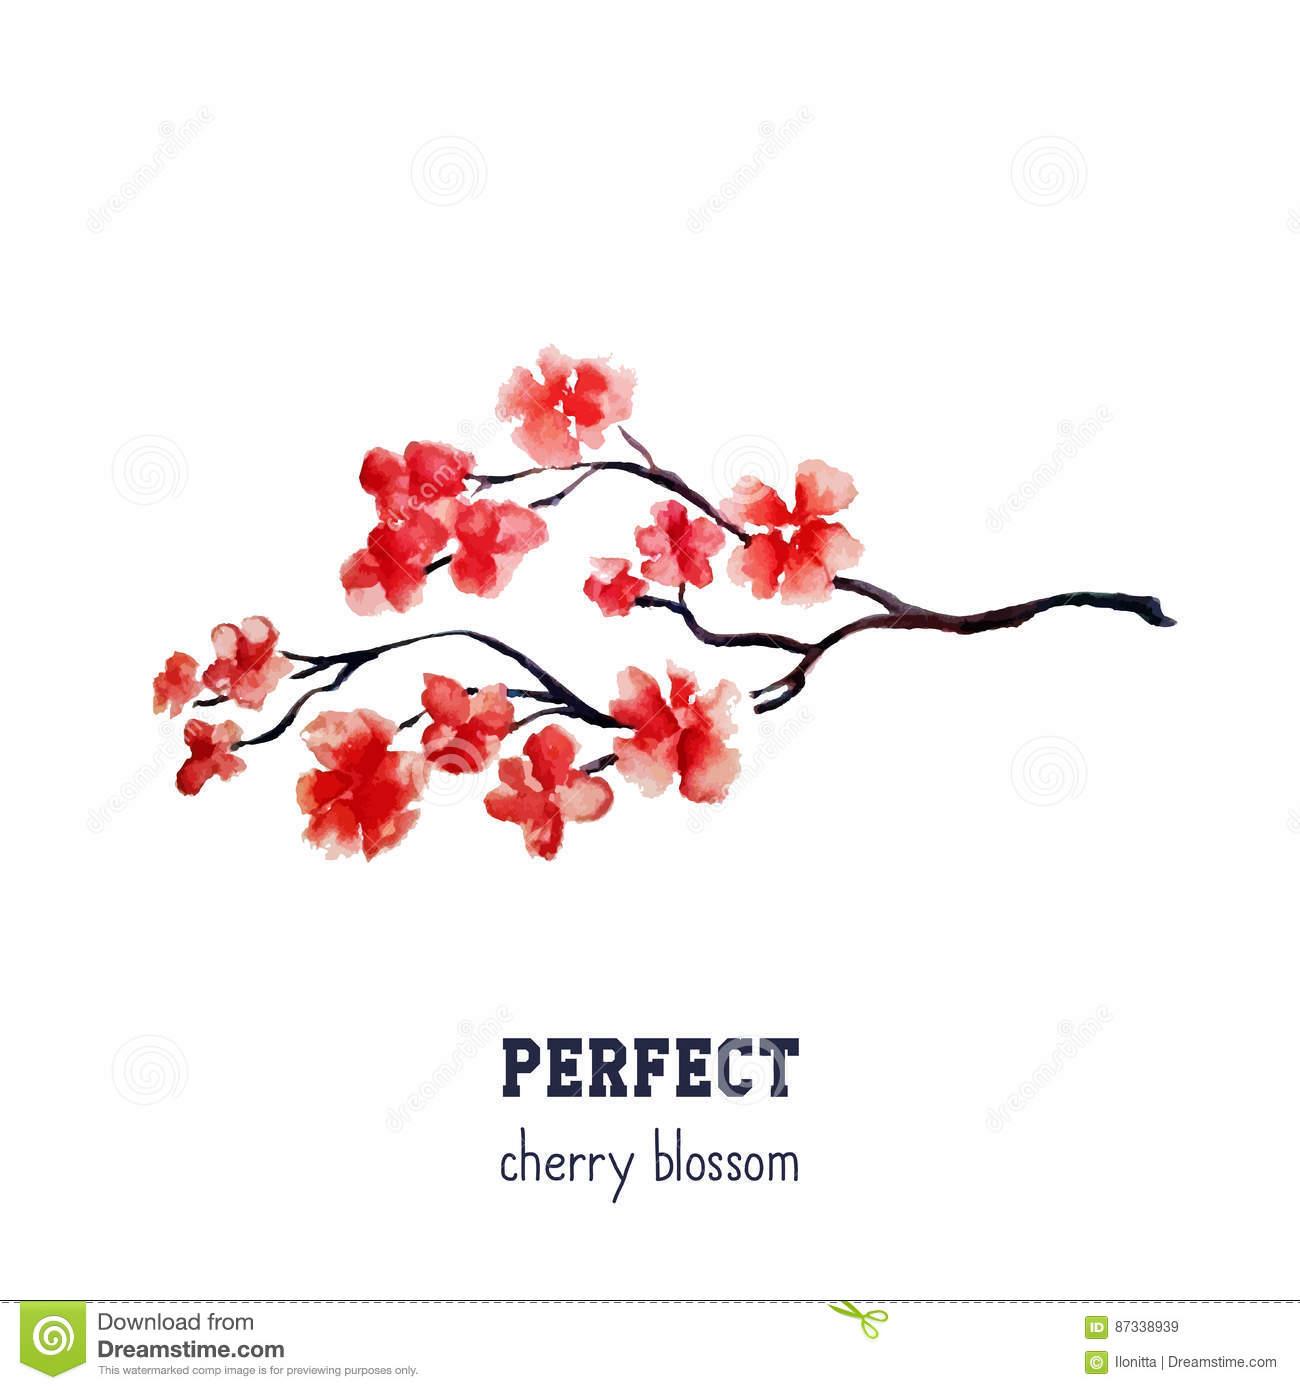 Realistic red sakura blossom - Japanese red cherry tree isolated on white background.